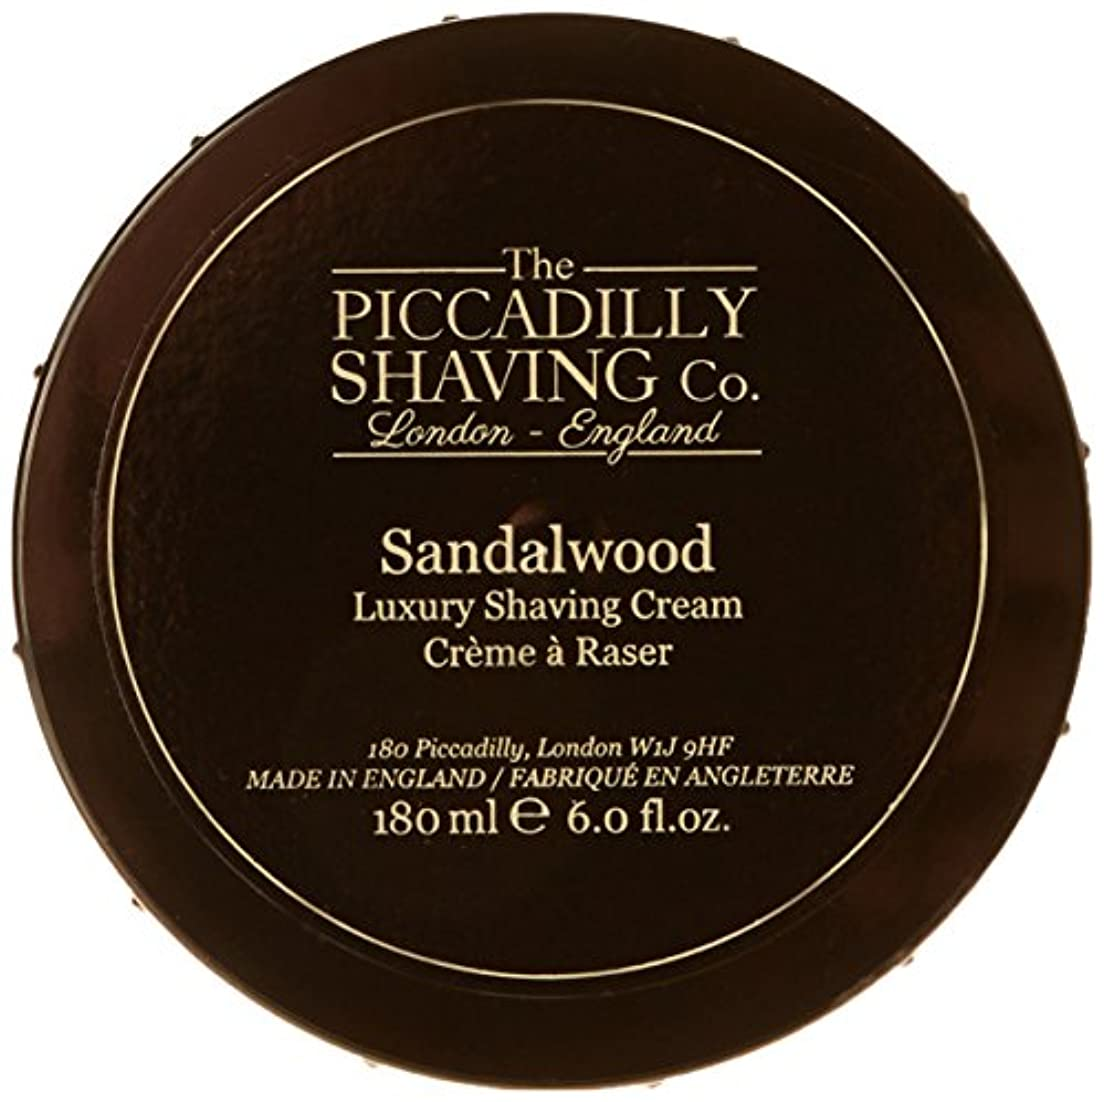 四半期厳密に小さいTaylor Of Old Bond Street The Piccadilly Shaving Co. Sandalwood Luxury Shaving Cream 180g/6oz並行輸入品